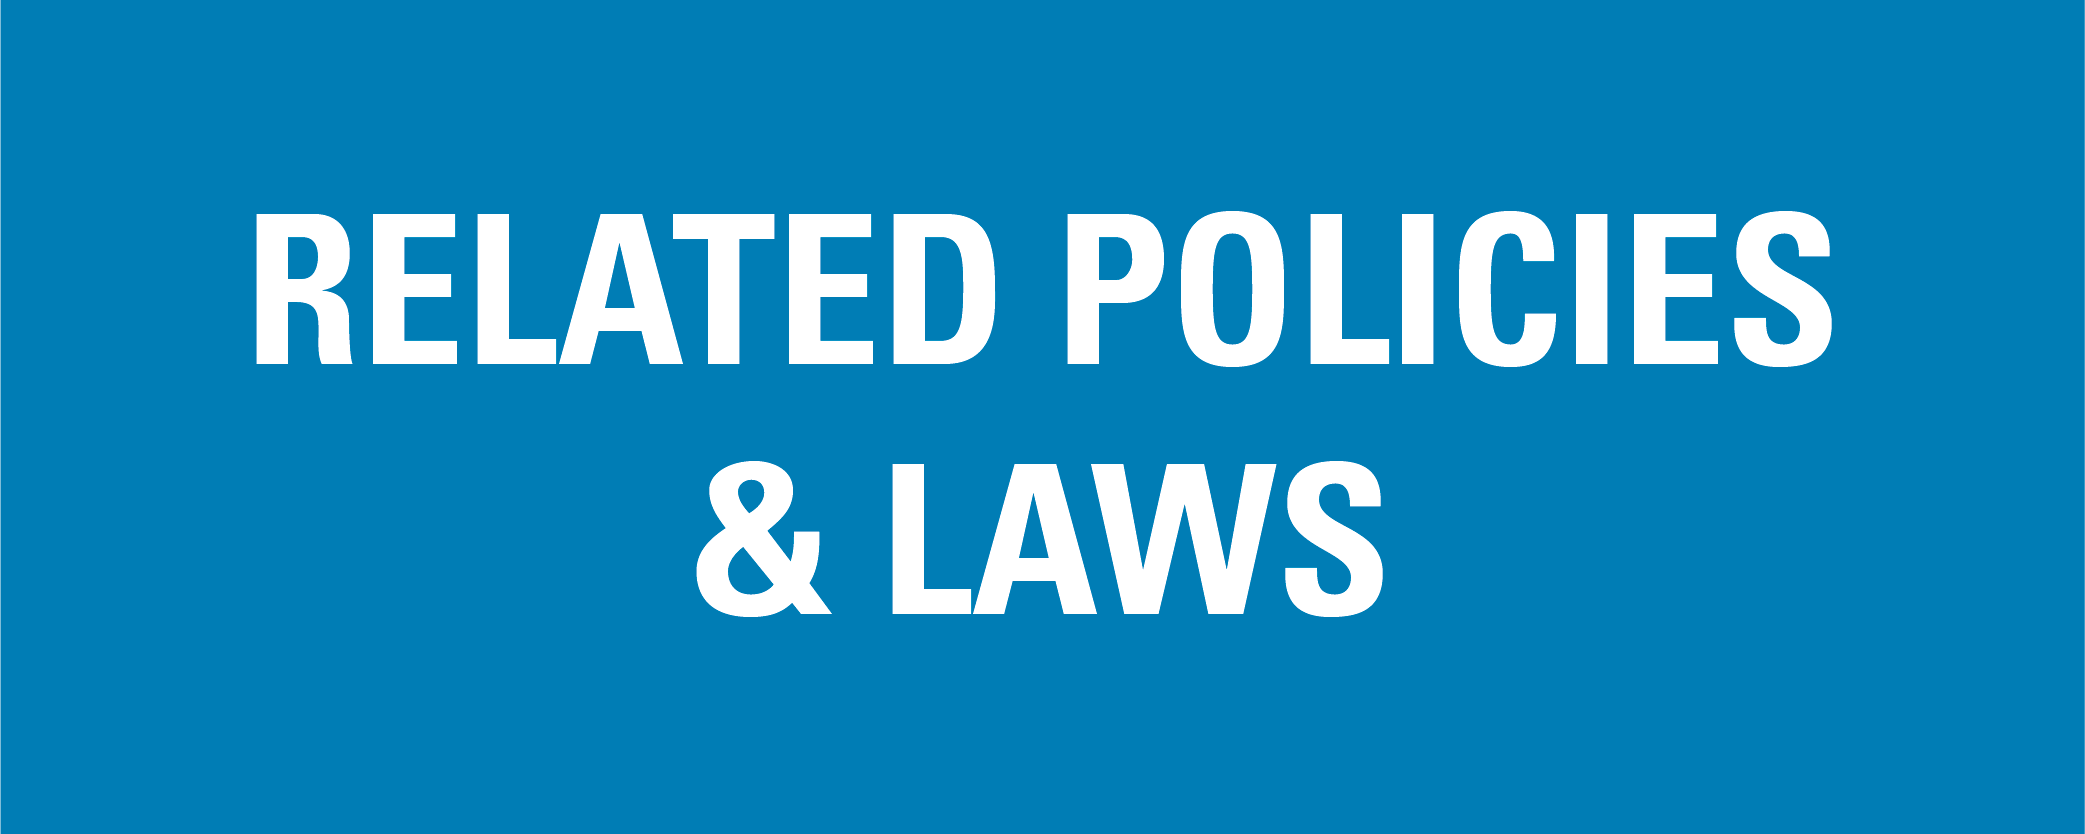 Related Policies and Laws